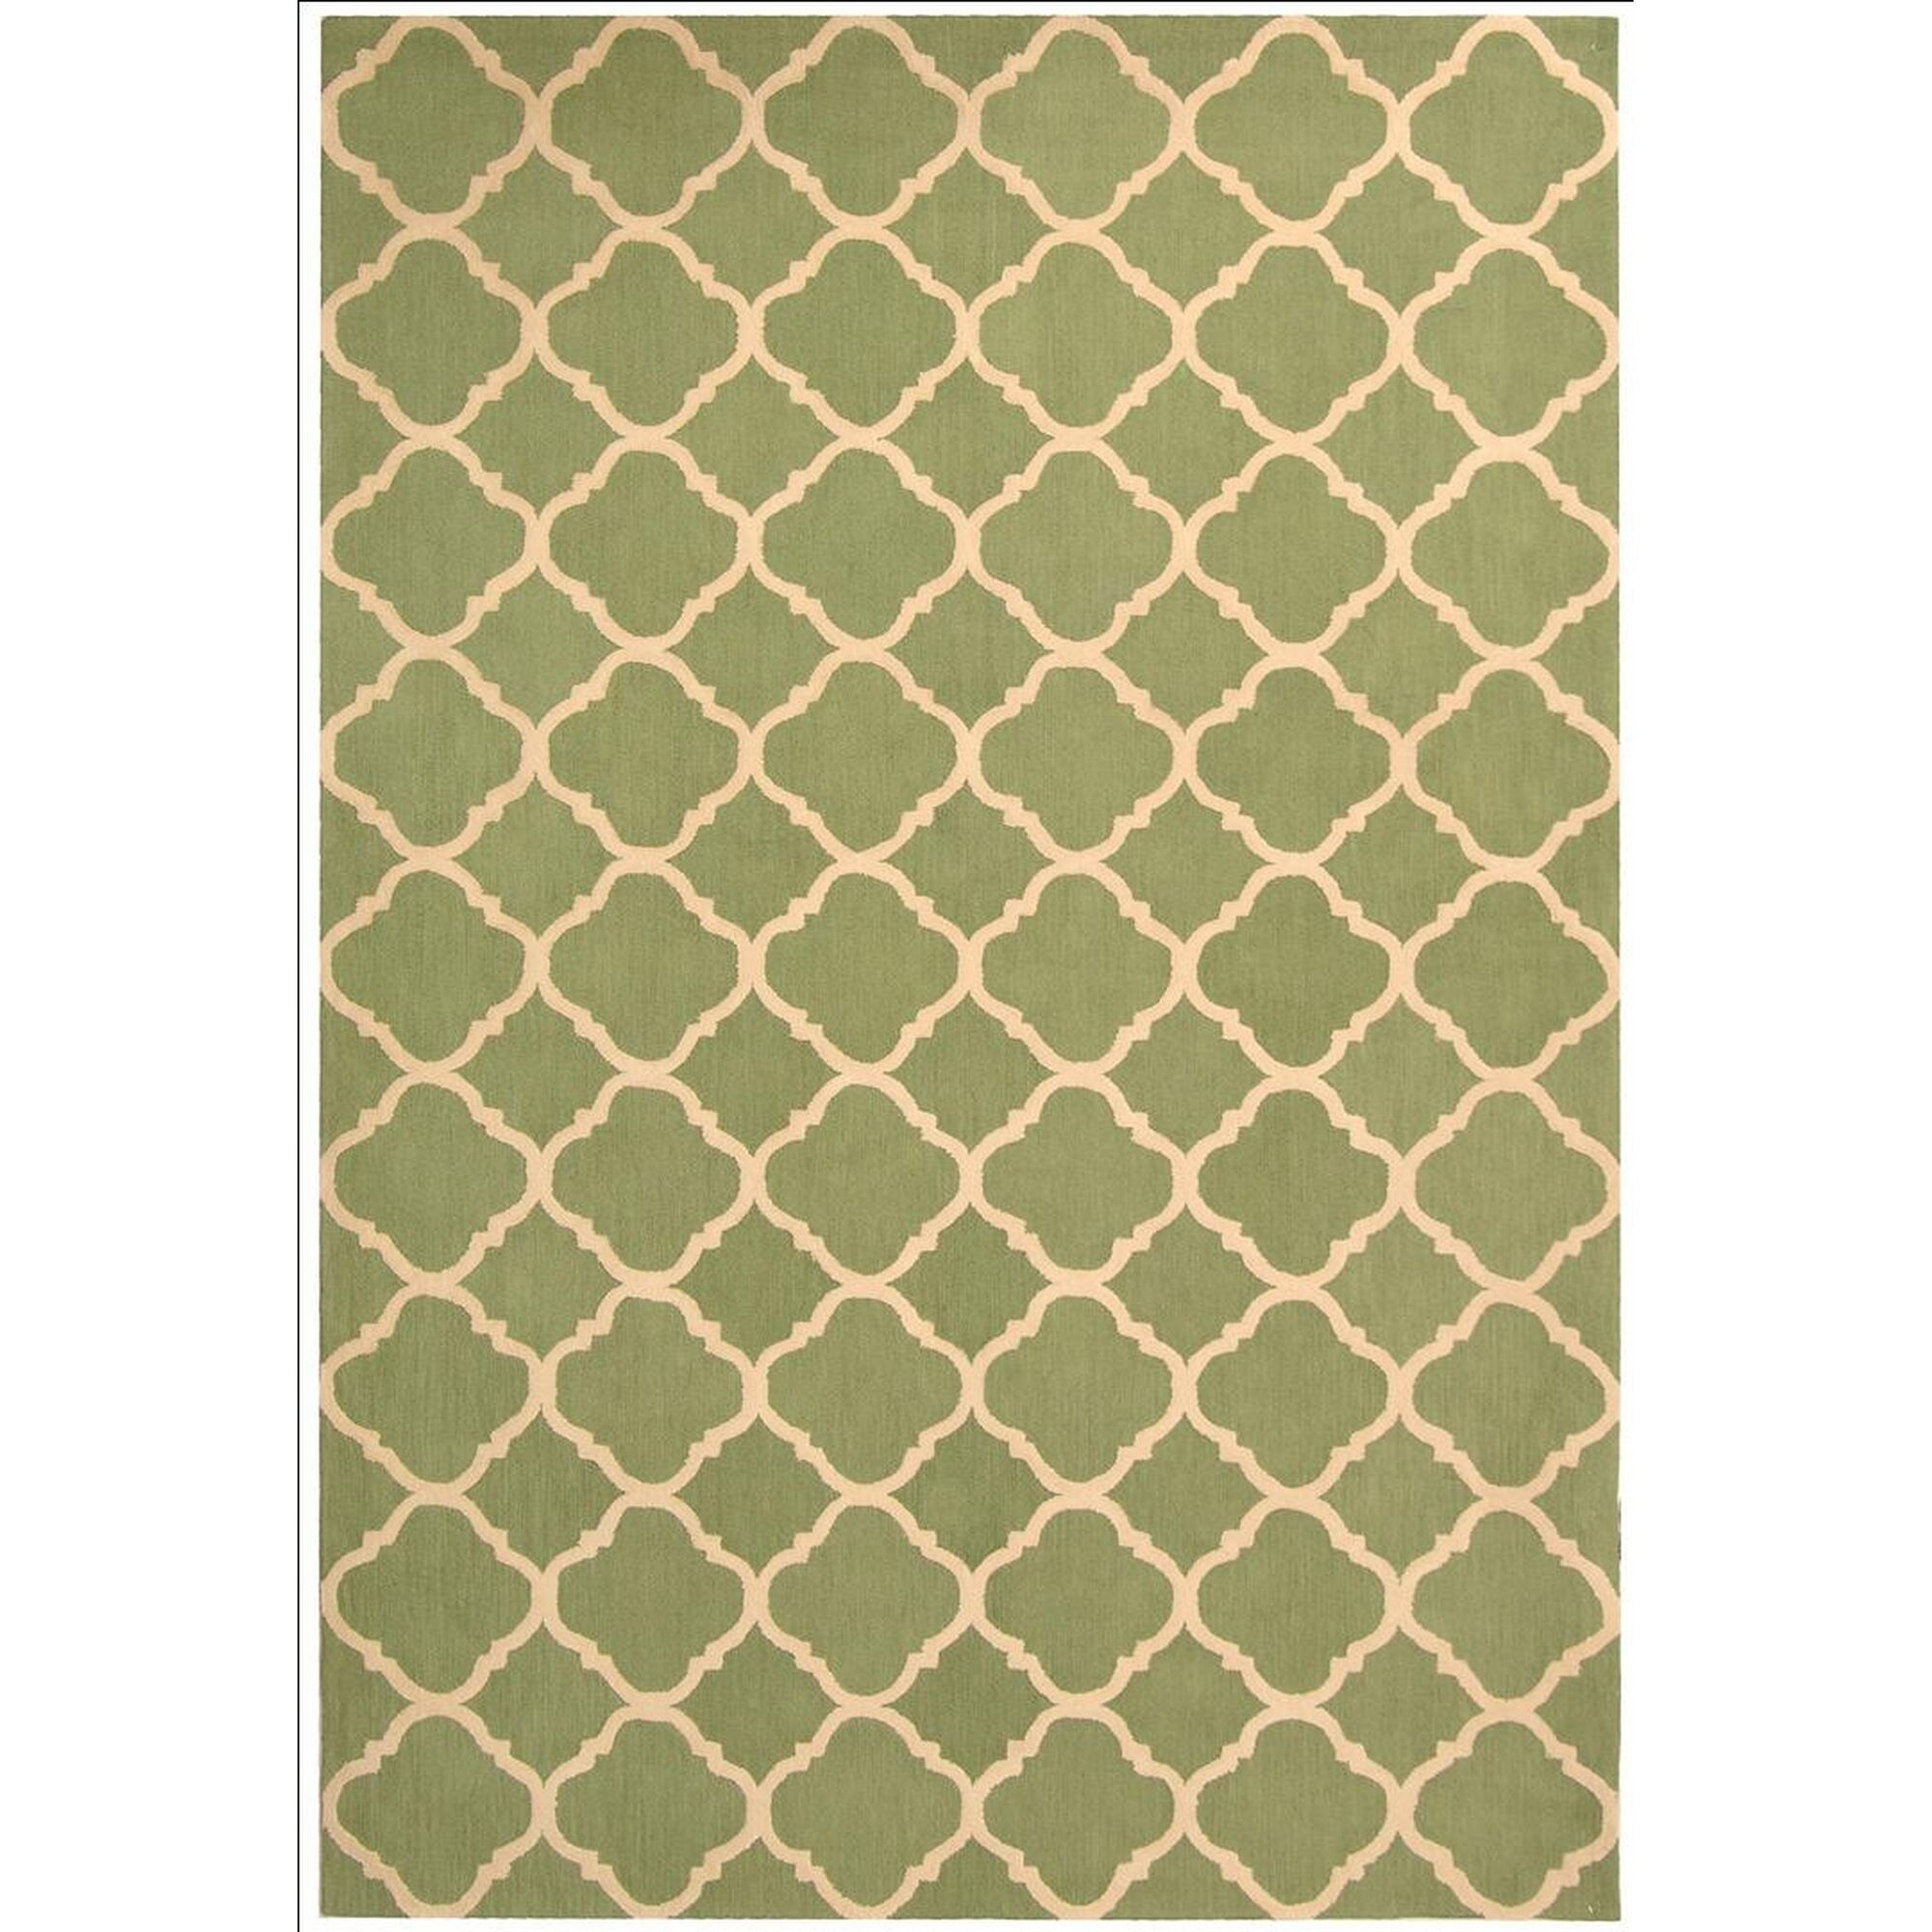 Fullerton Green/Ivory Geometric Area Rug Rug Size: Square 7'